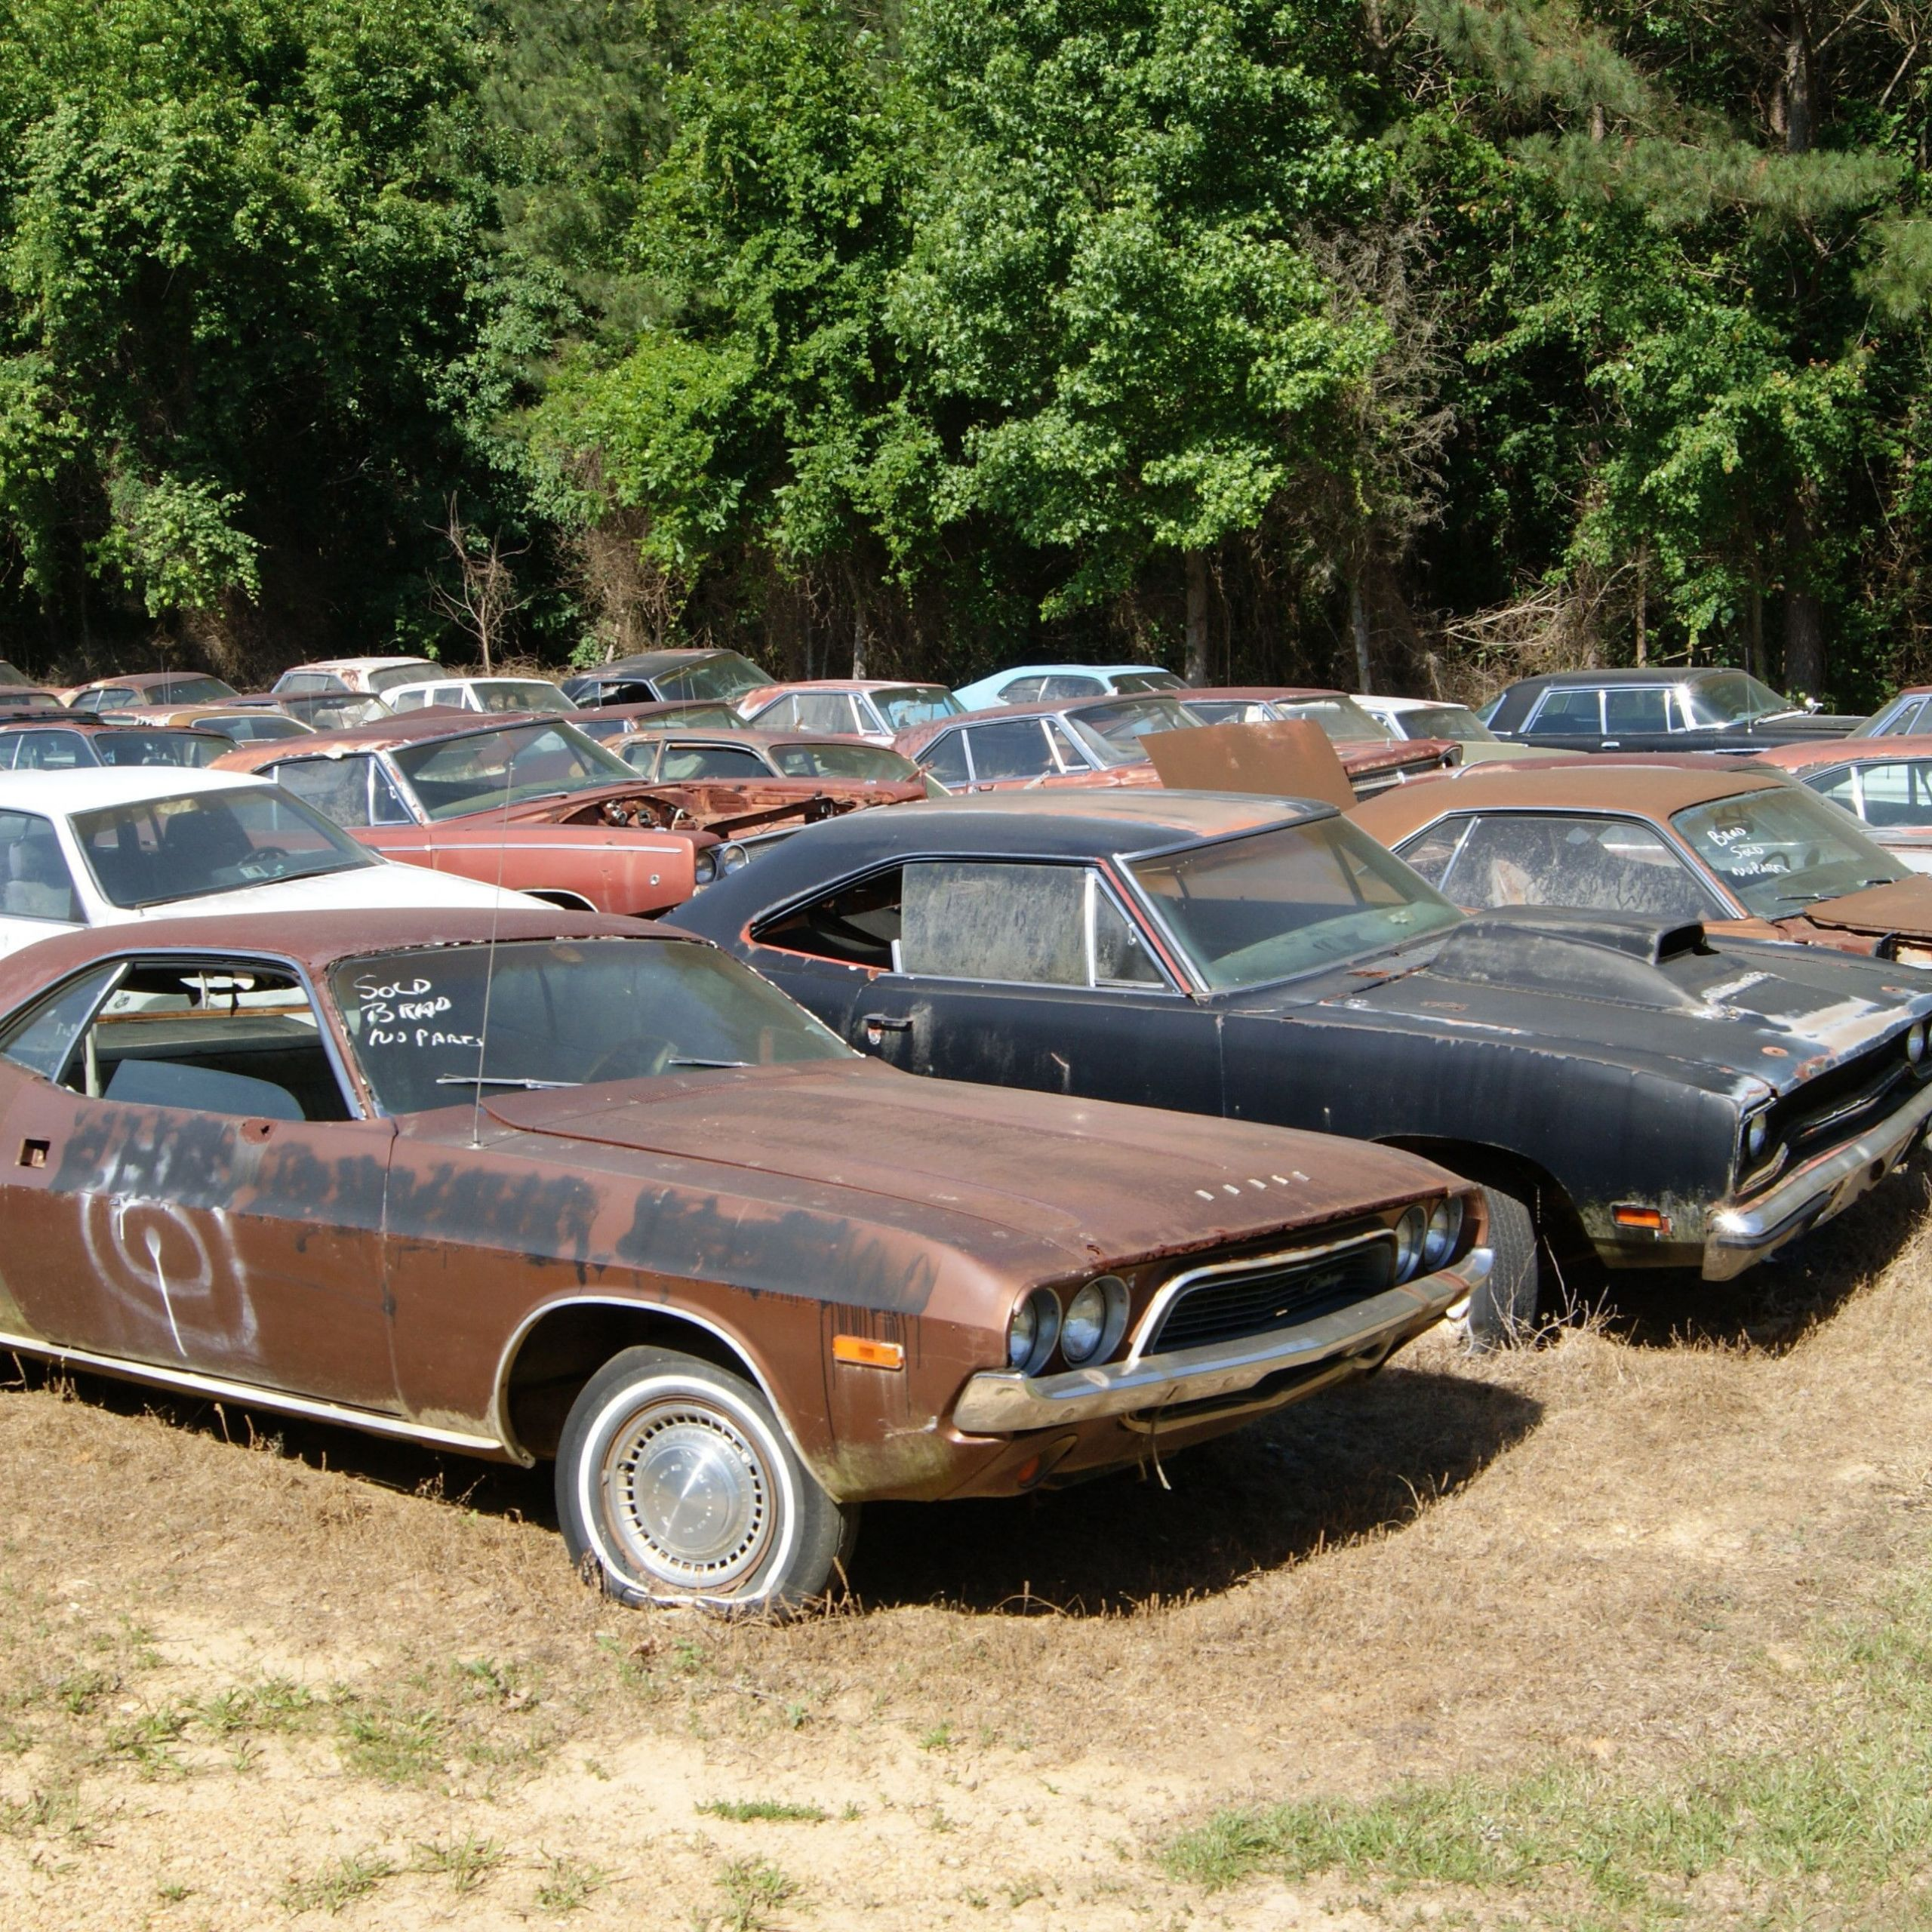 Graveyard Carz Used Cars for Sale Inspirational Inspirational Graveyard Carz Used Cars for Sale